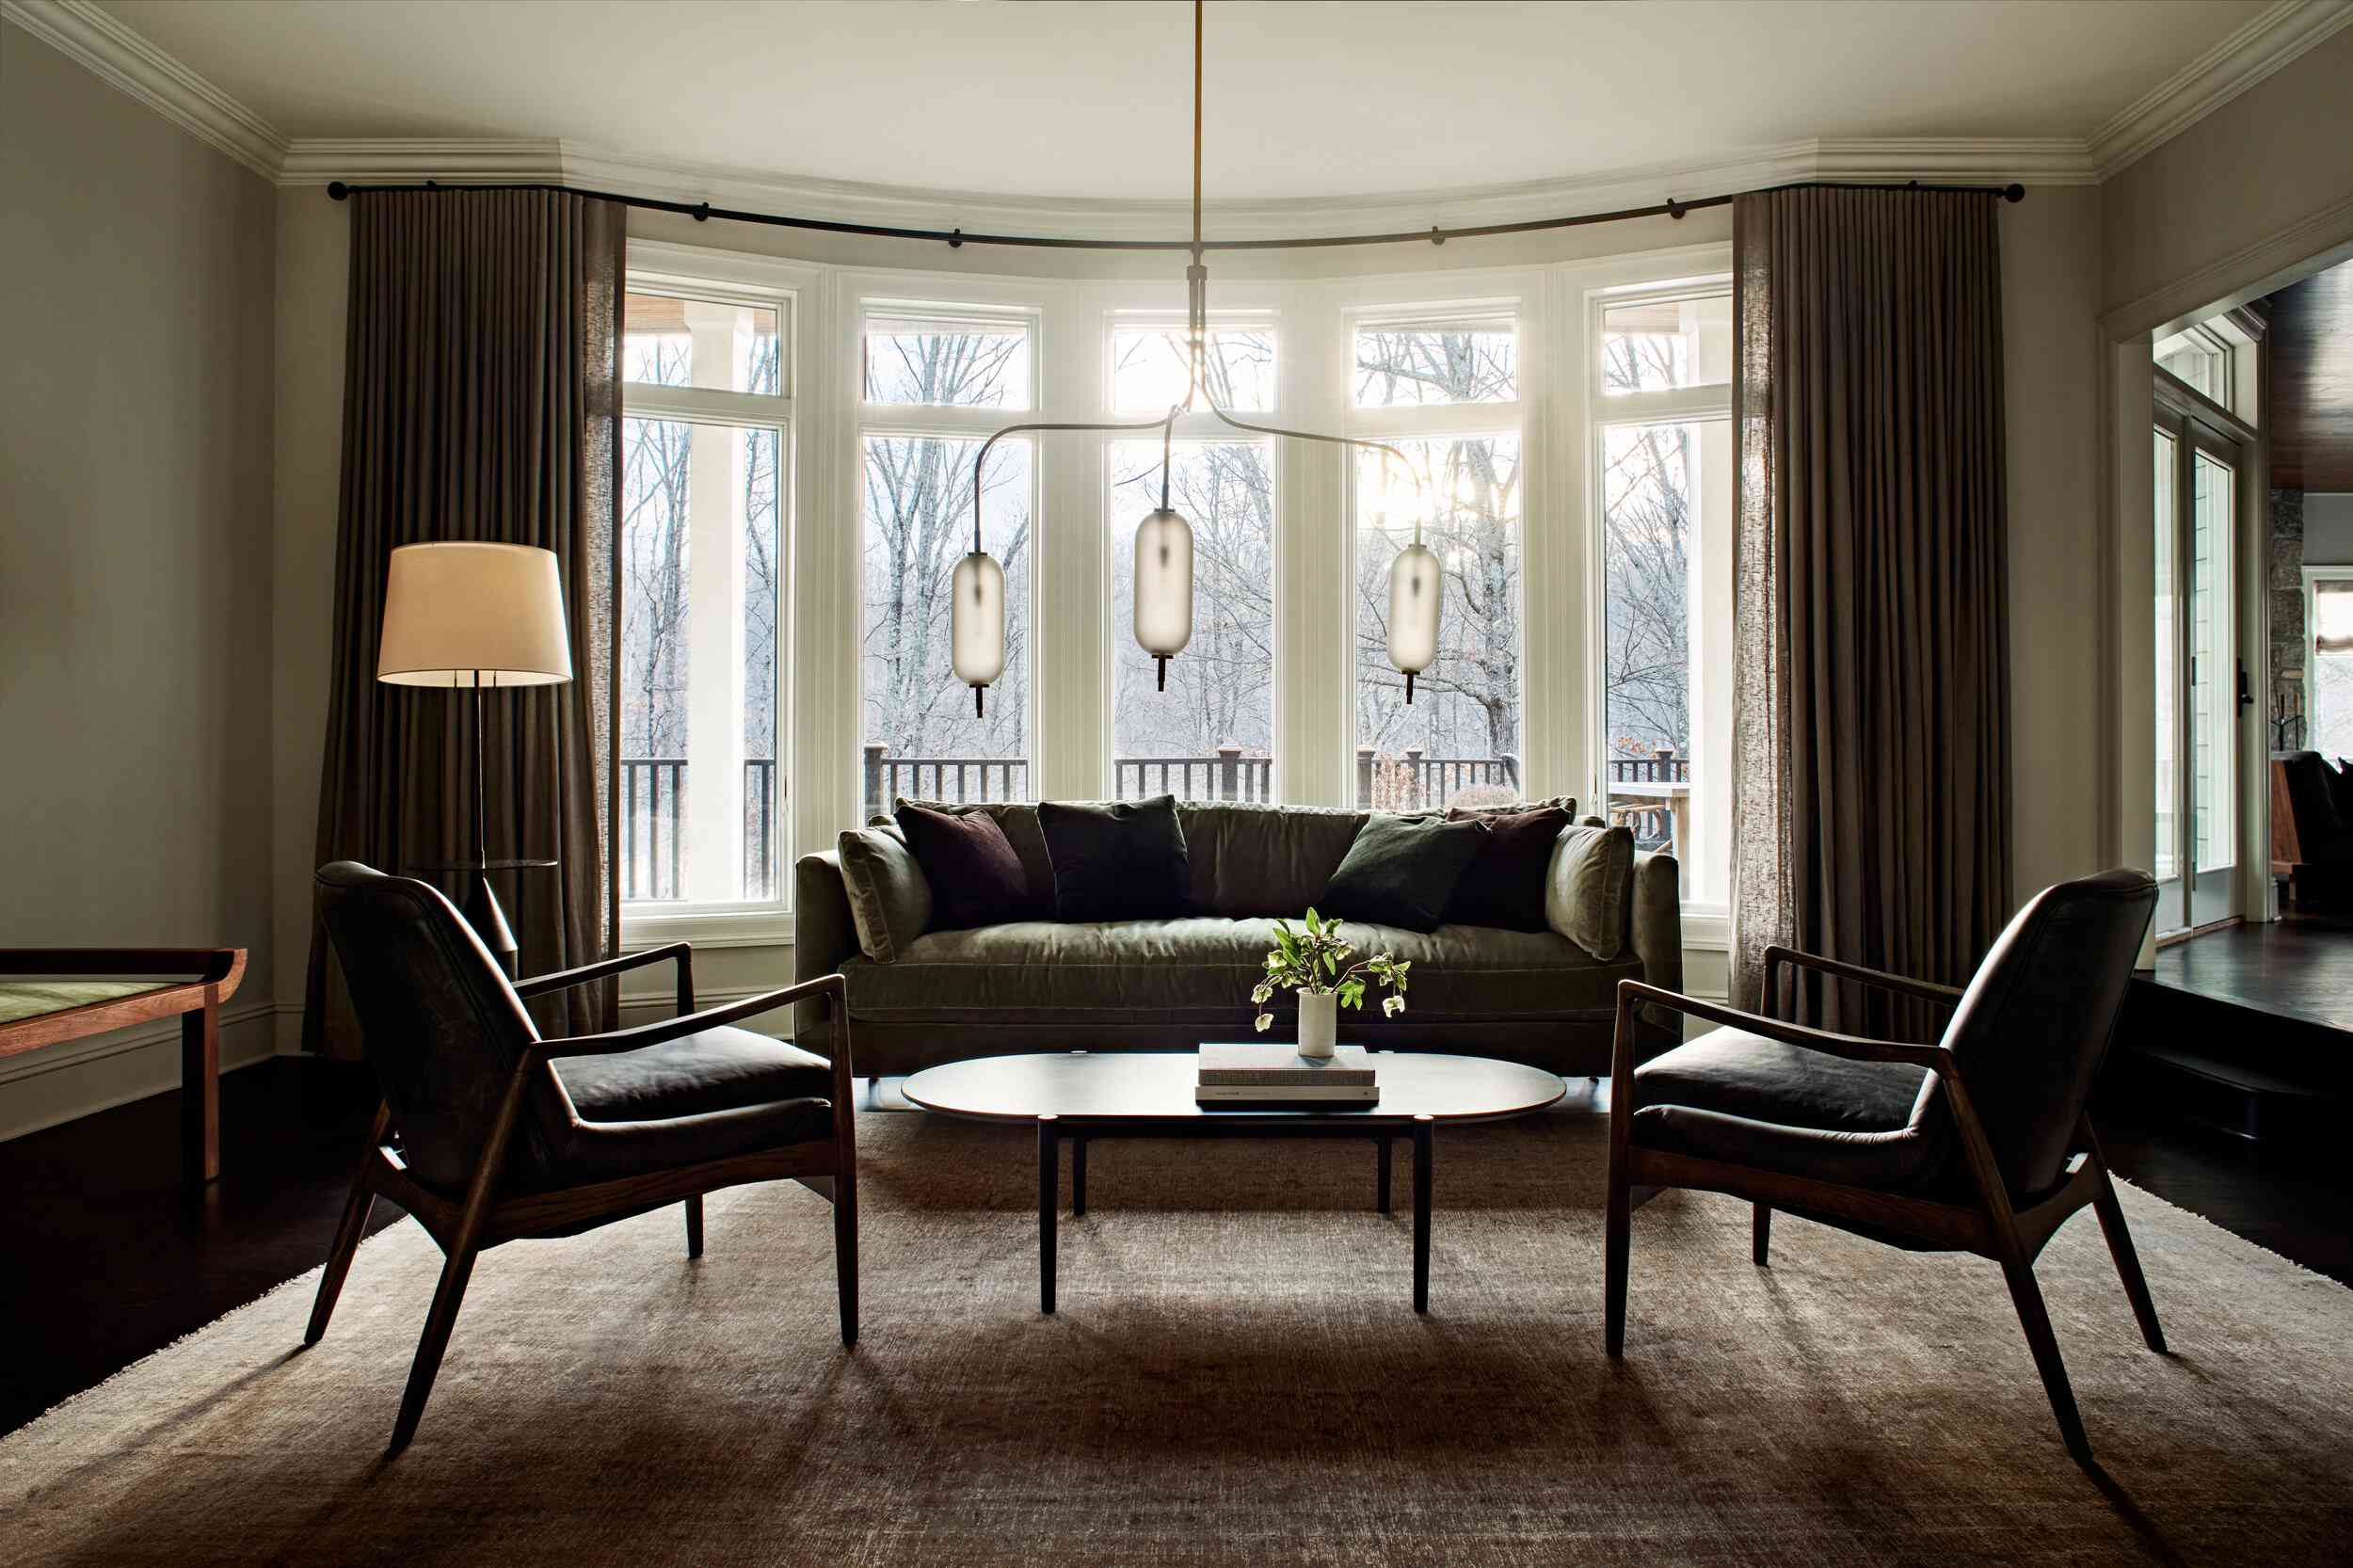 Bright but cozy living room with a velvet sofa